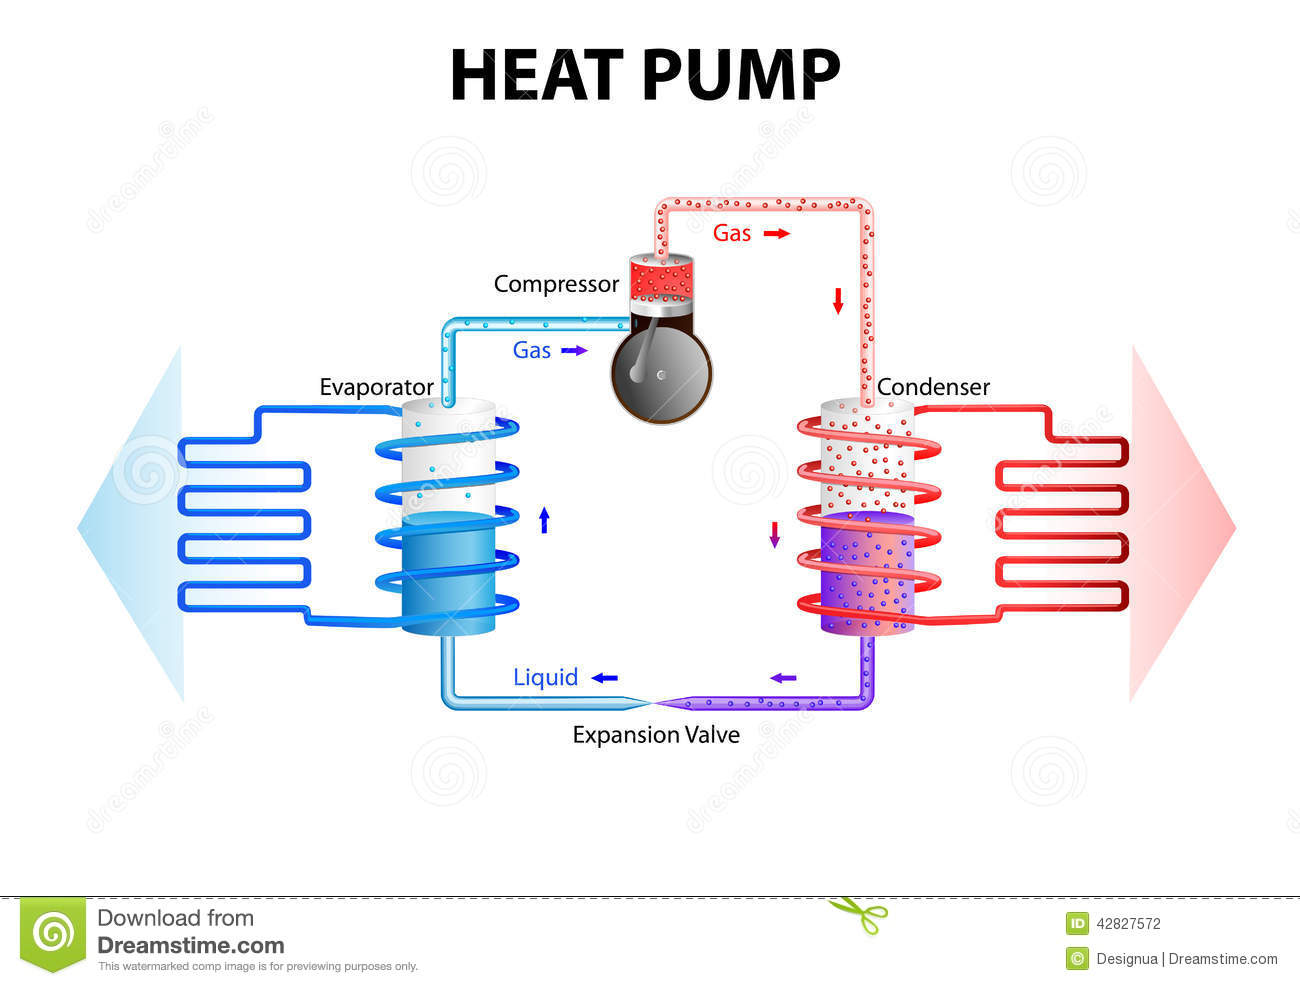 heat pump cooling system works extracting energy stored ground water converts building heating pumps 42827572 how a air conditioner works grihon com ac, coolers & devices how does air conditioning work diagram at n-0.co